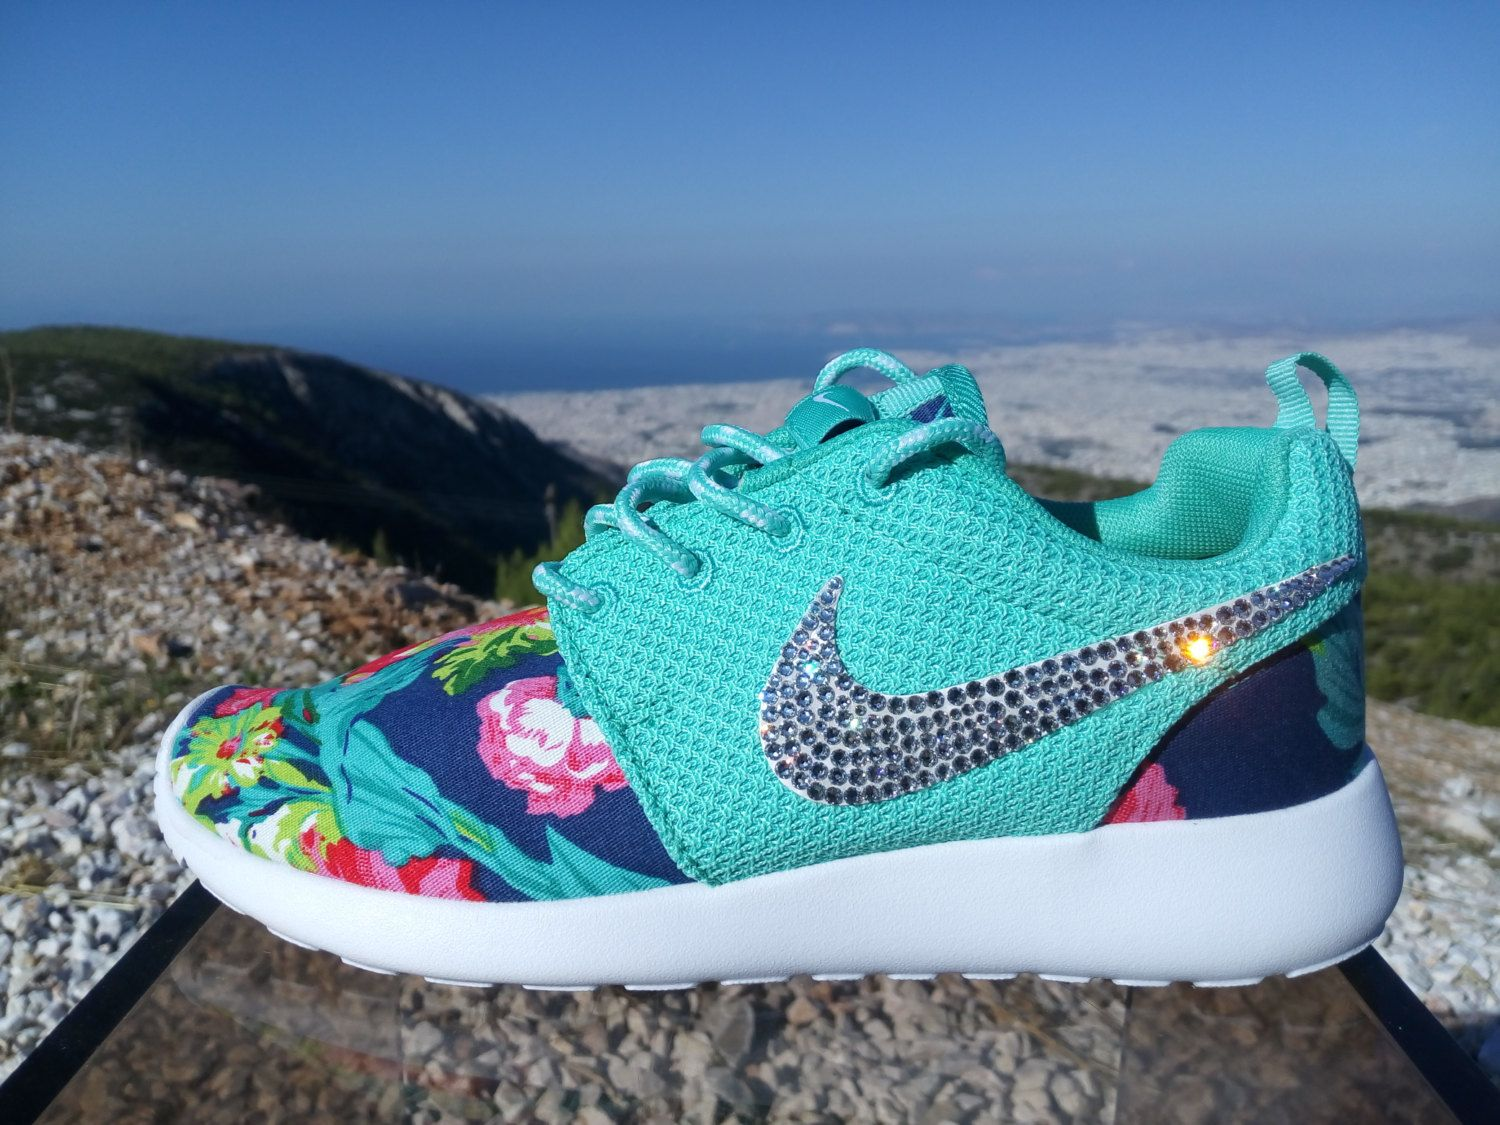 nike roshe run women athletic sneakers aqua color sport shoes custom with  fabric floral and blinged